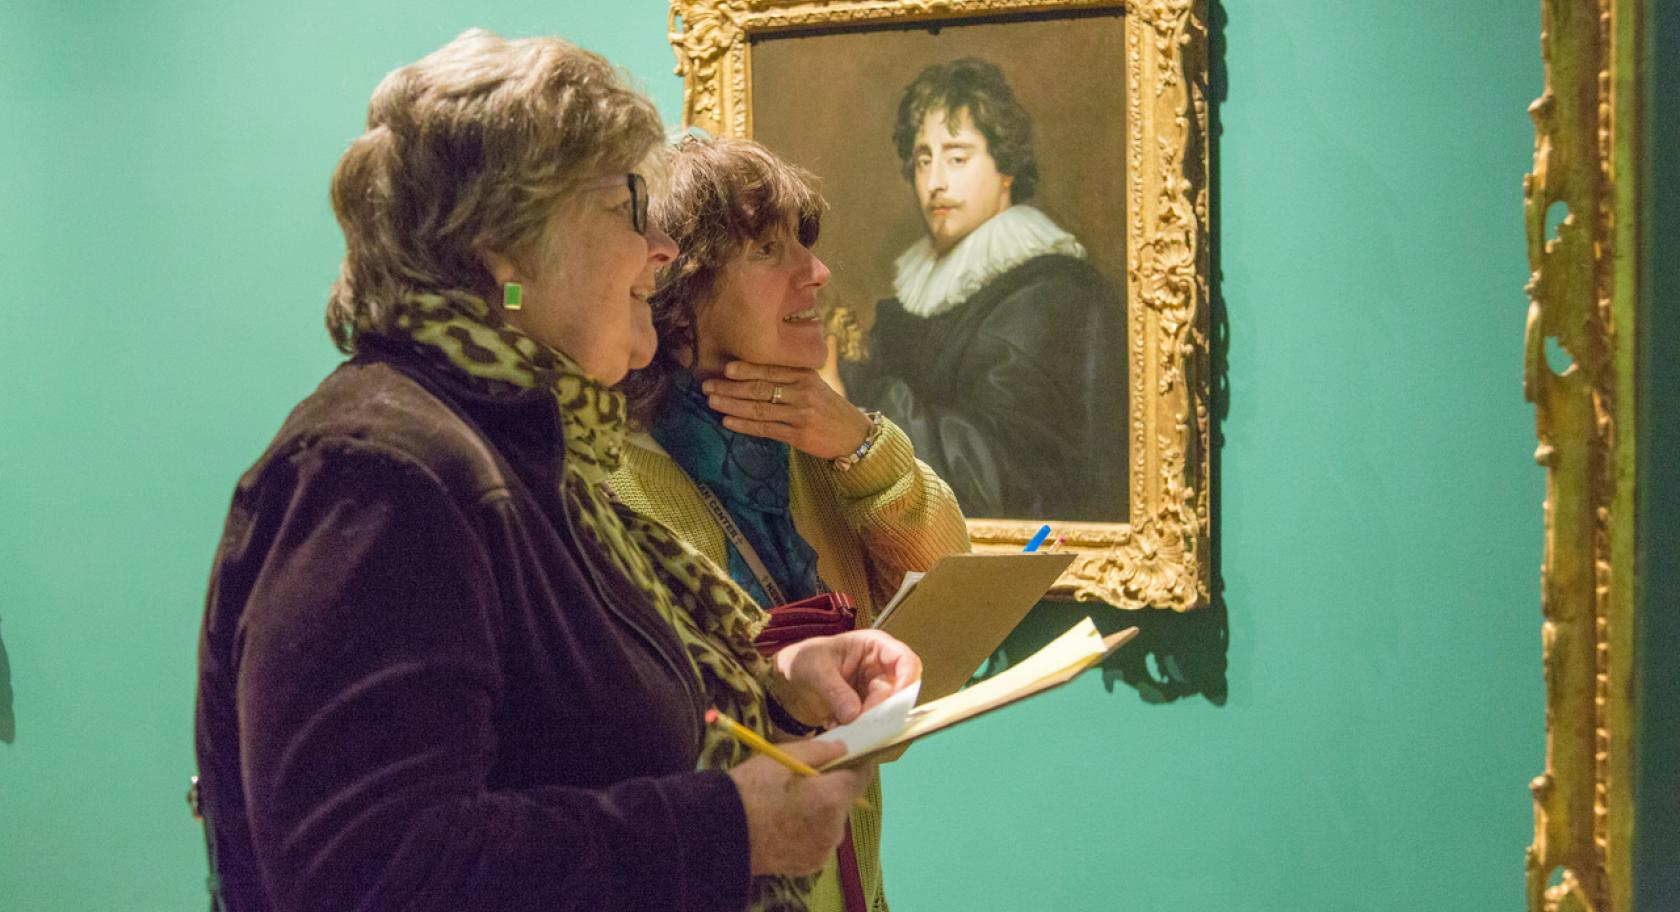 Docents in Galleries